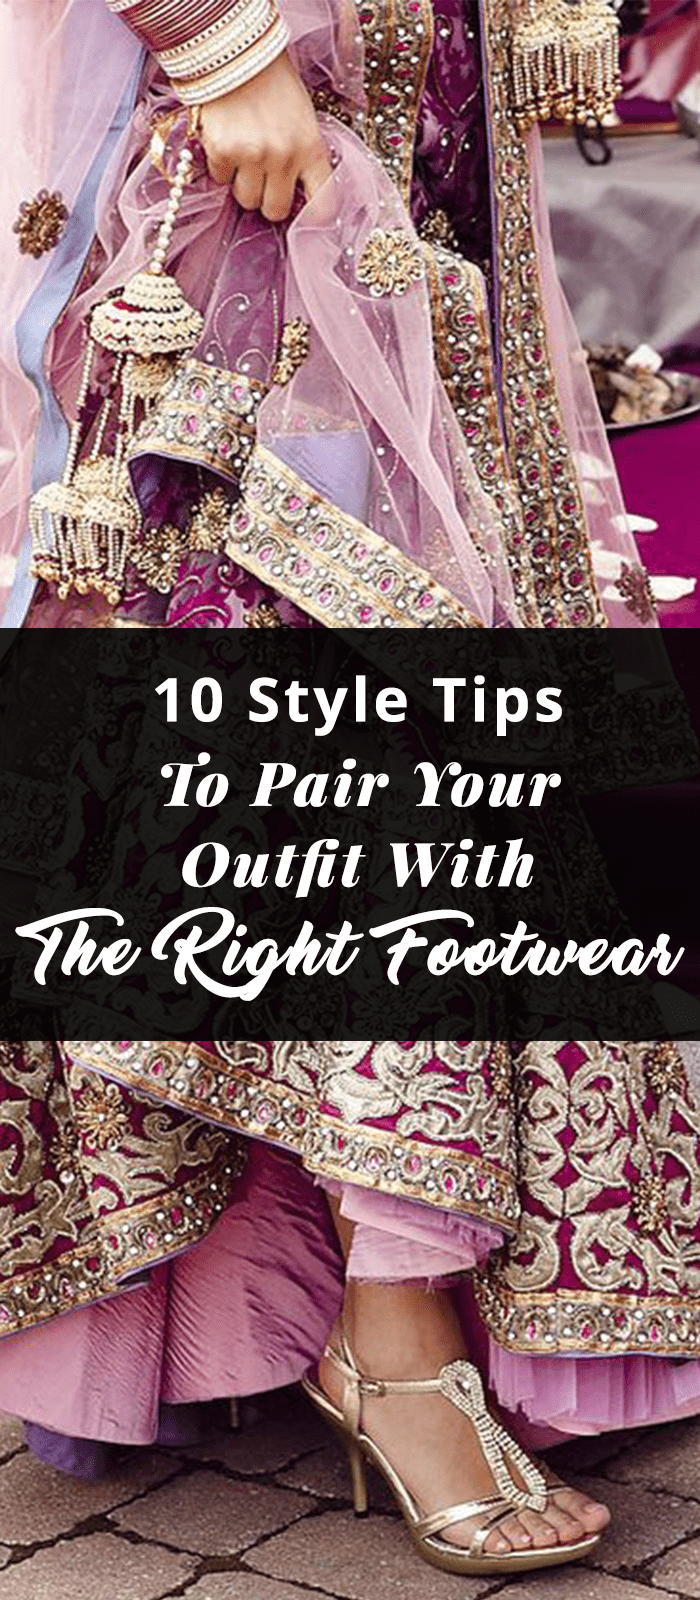 10 Style Tips To Pair Your Outfit With The Right Footwear